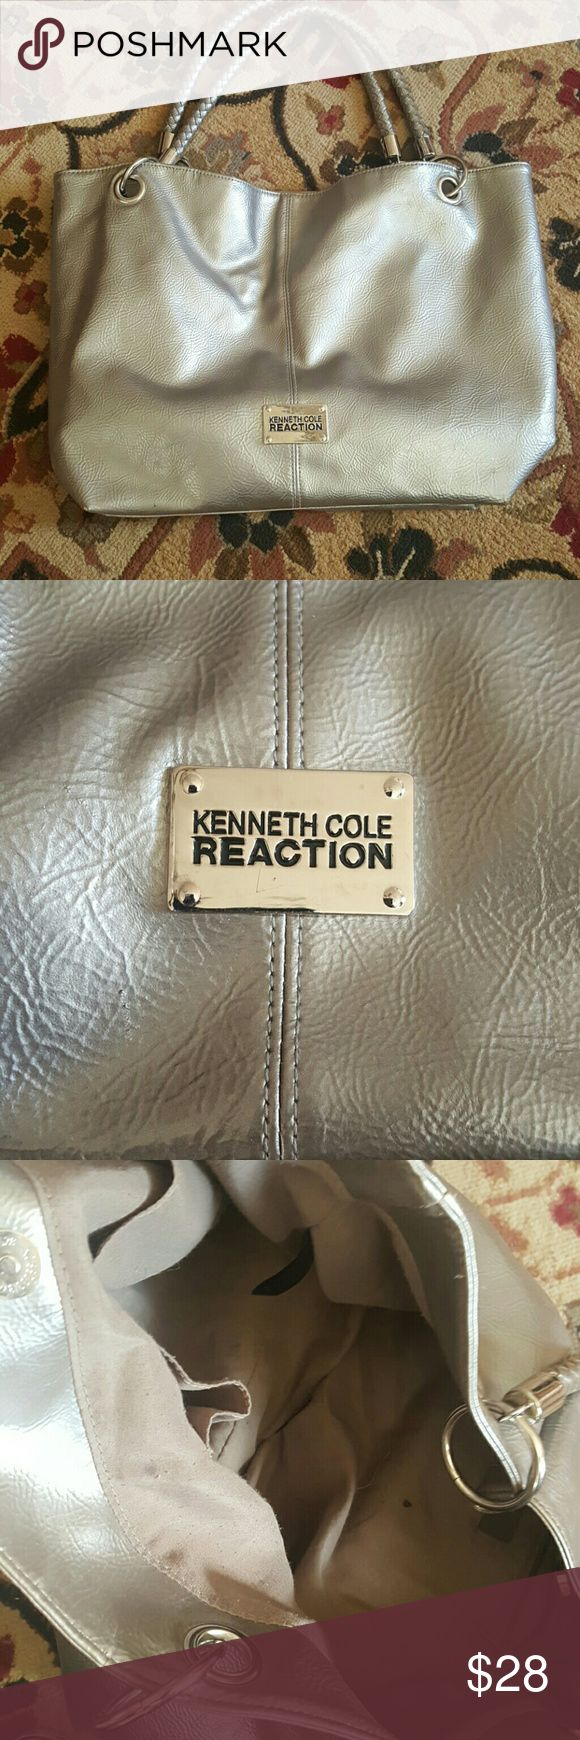 Kenneth Cole Reaction silver tote bag This is a beautiful Kenneth Cole Reaction silver tote bag. It is in great shape exceptthe inside is a little torn, with a few stains. It's 18 inches wide and 14 inches long From top of handlestobottomofthepurseitis 22 inches long. Kenneth Cole Reaction Bags Totes